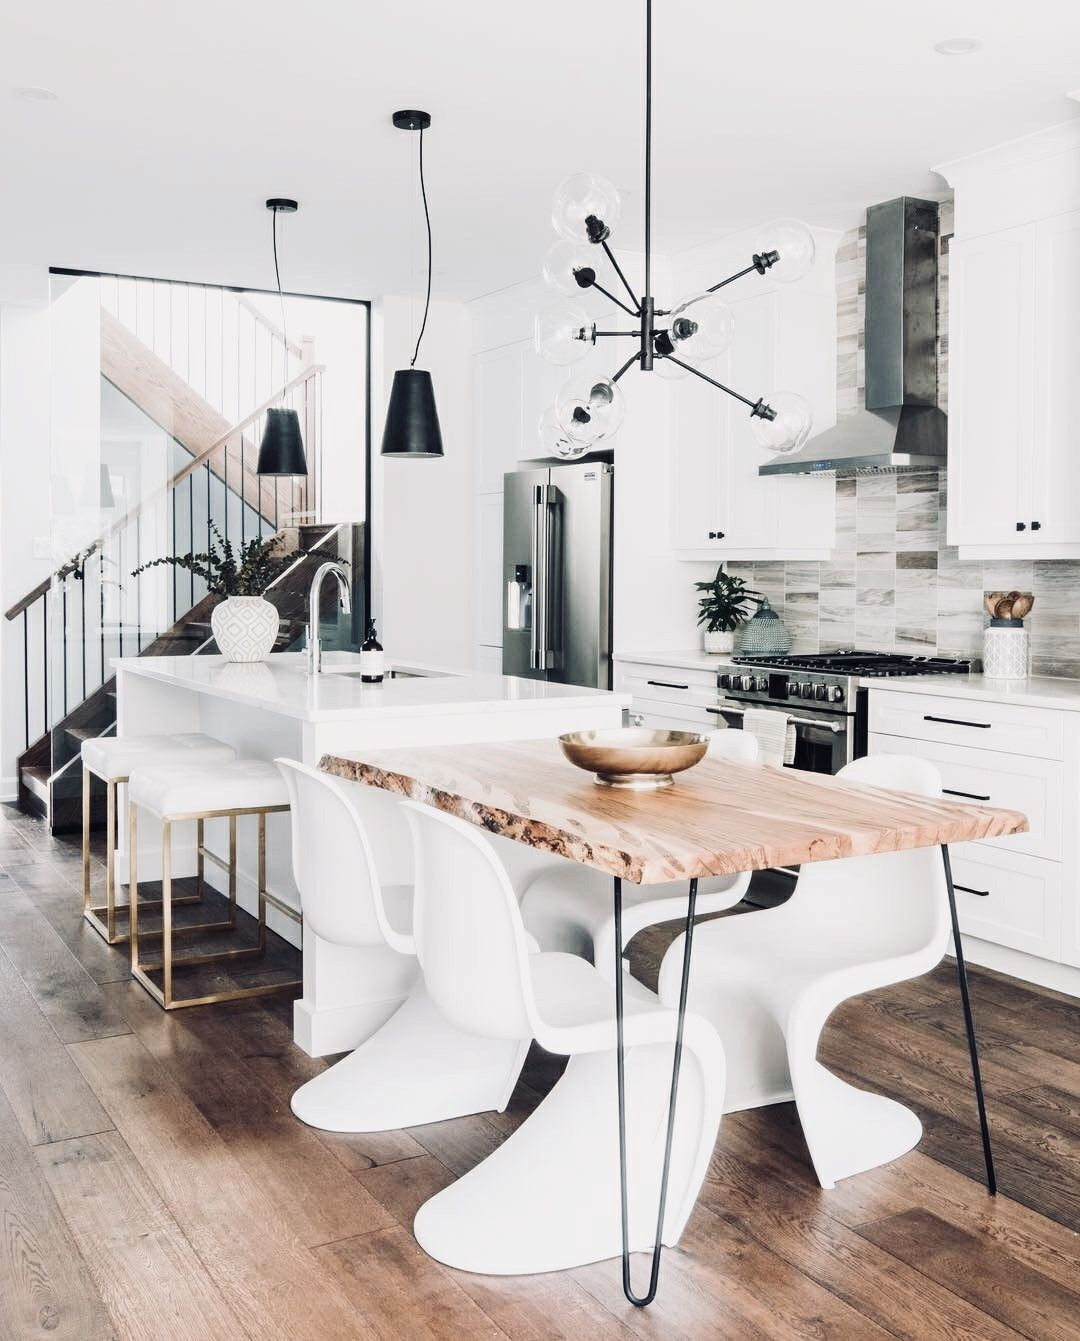 Pin by Just Decorate! on Out of the ordinary Kitchens! | Pinterest ...